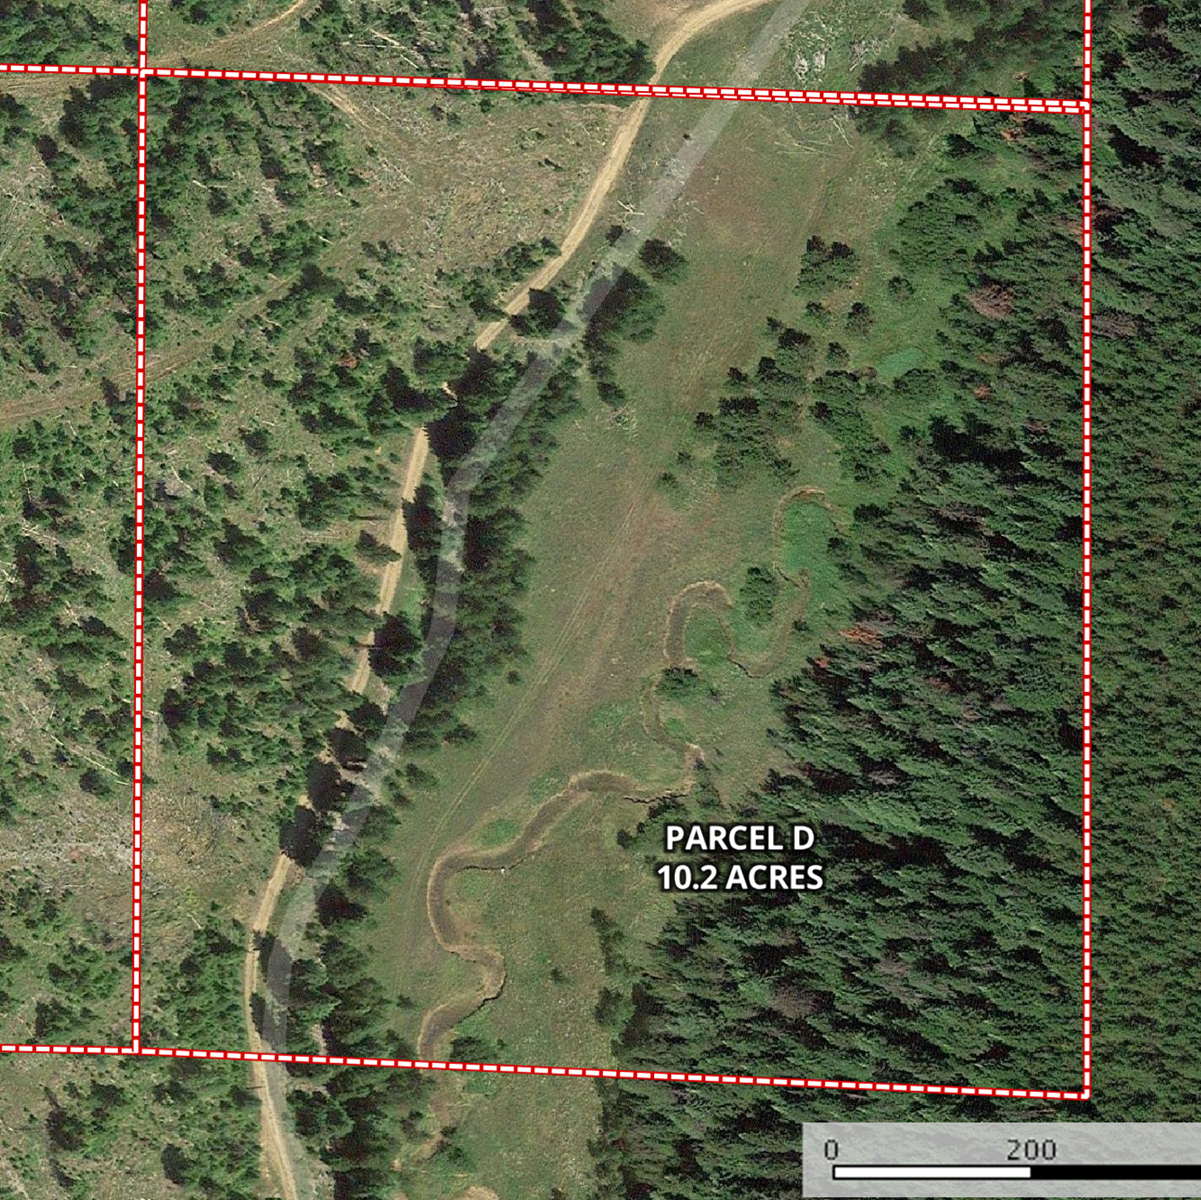 Land for Sale in Orofino, ID